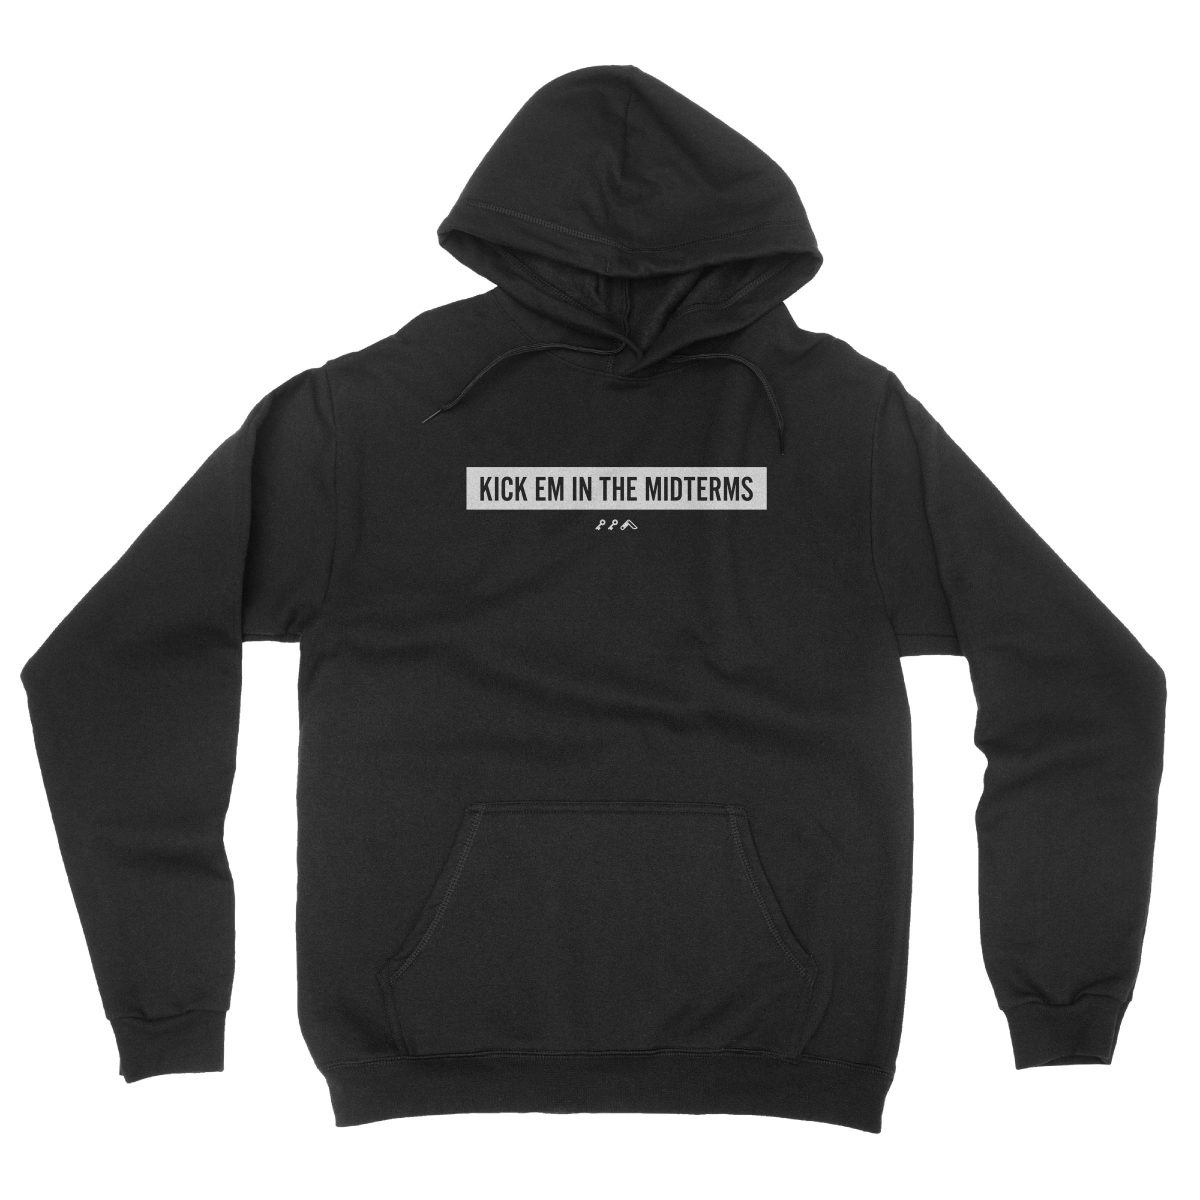 """KICK EM IN THE MIDTERMS"" funny political hoodie in black"